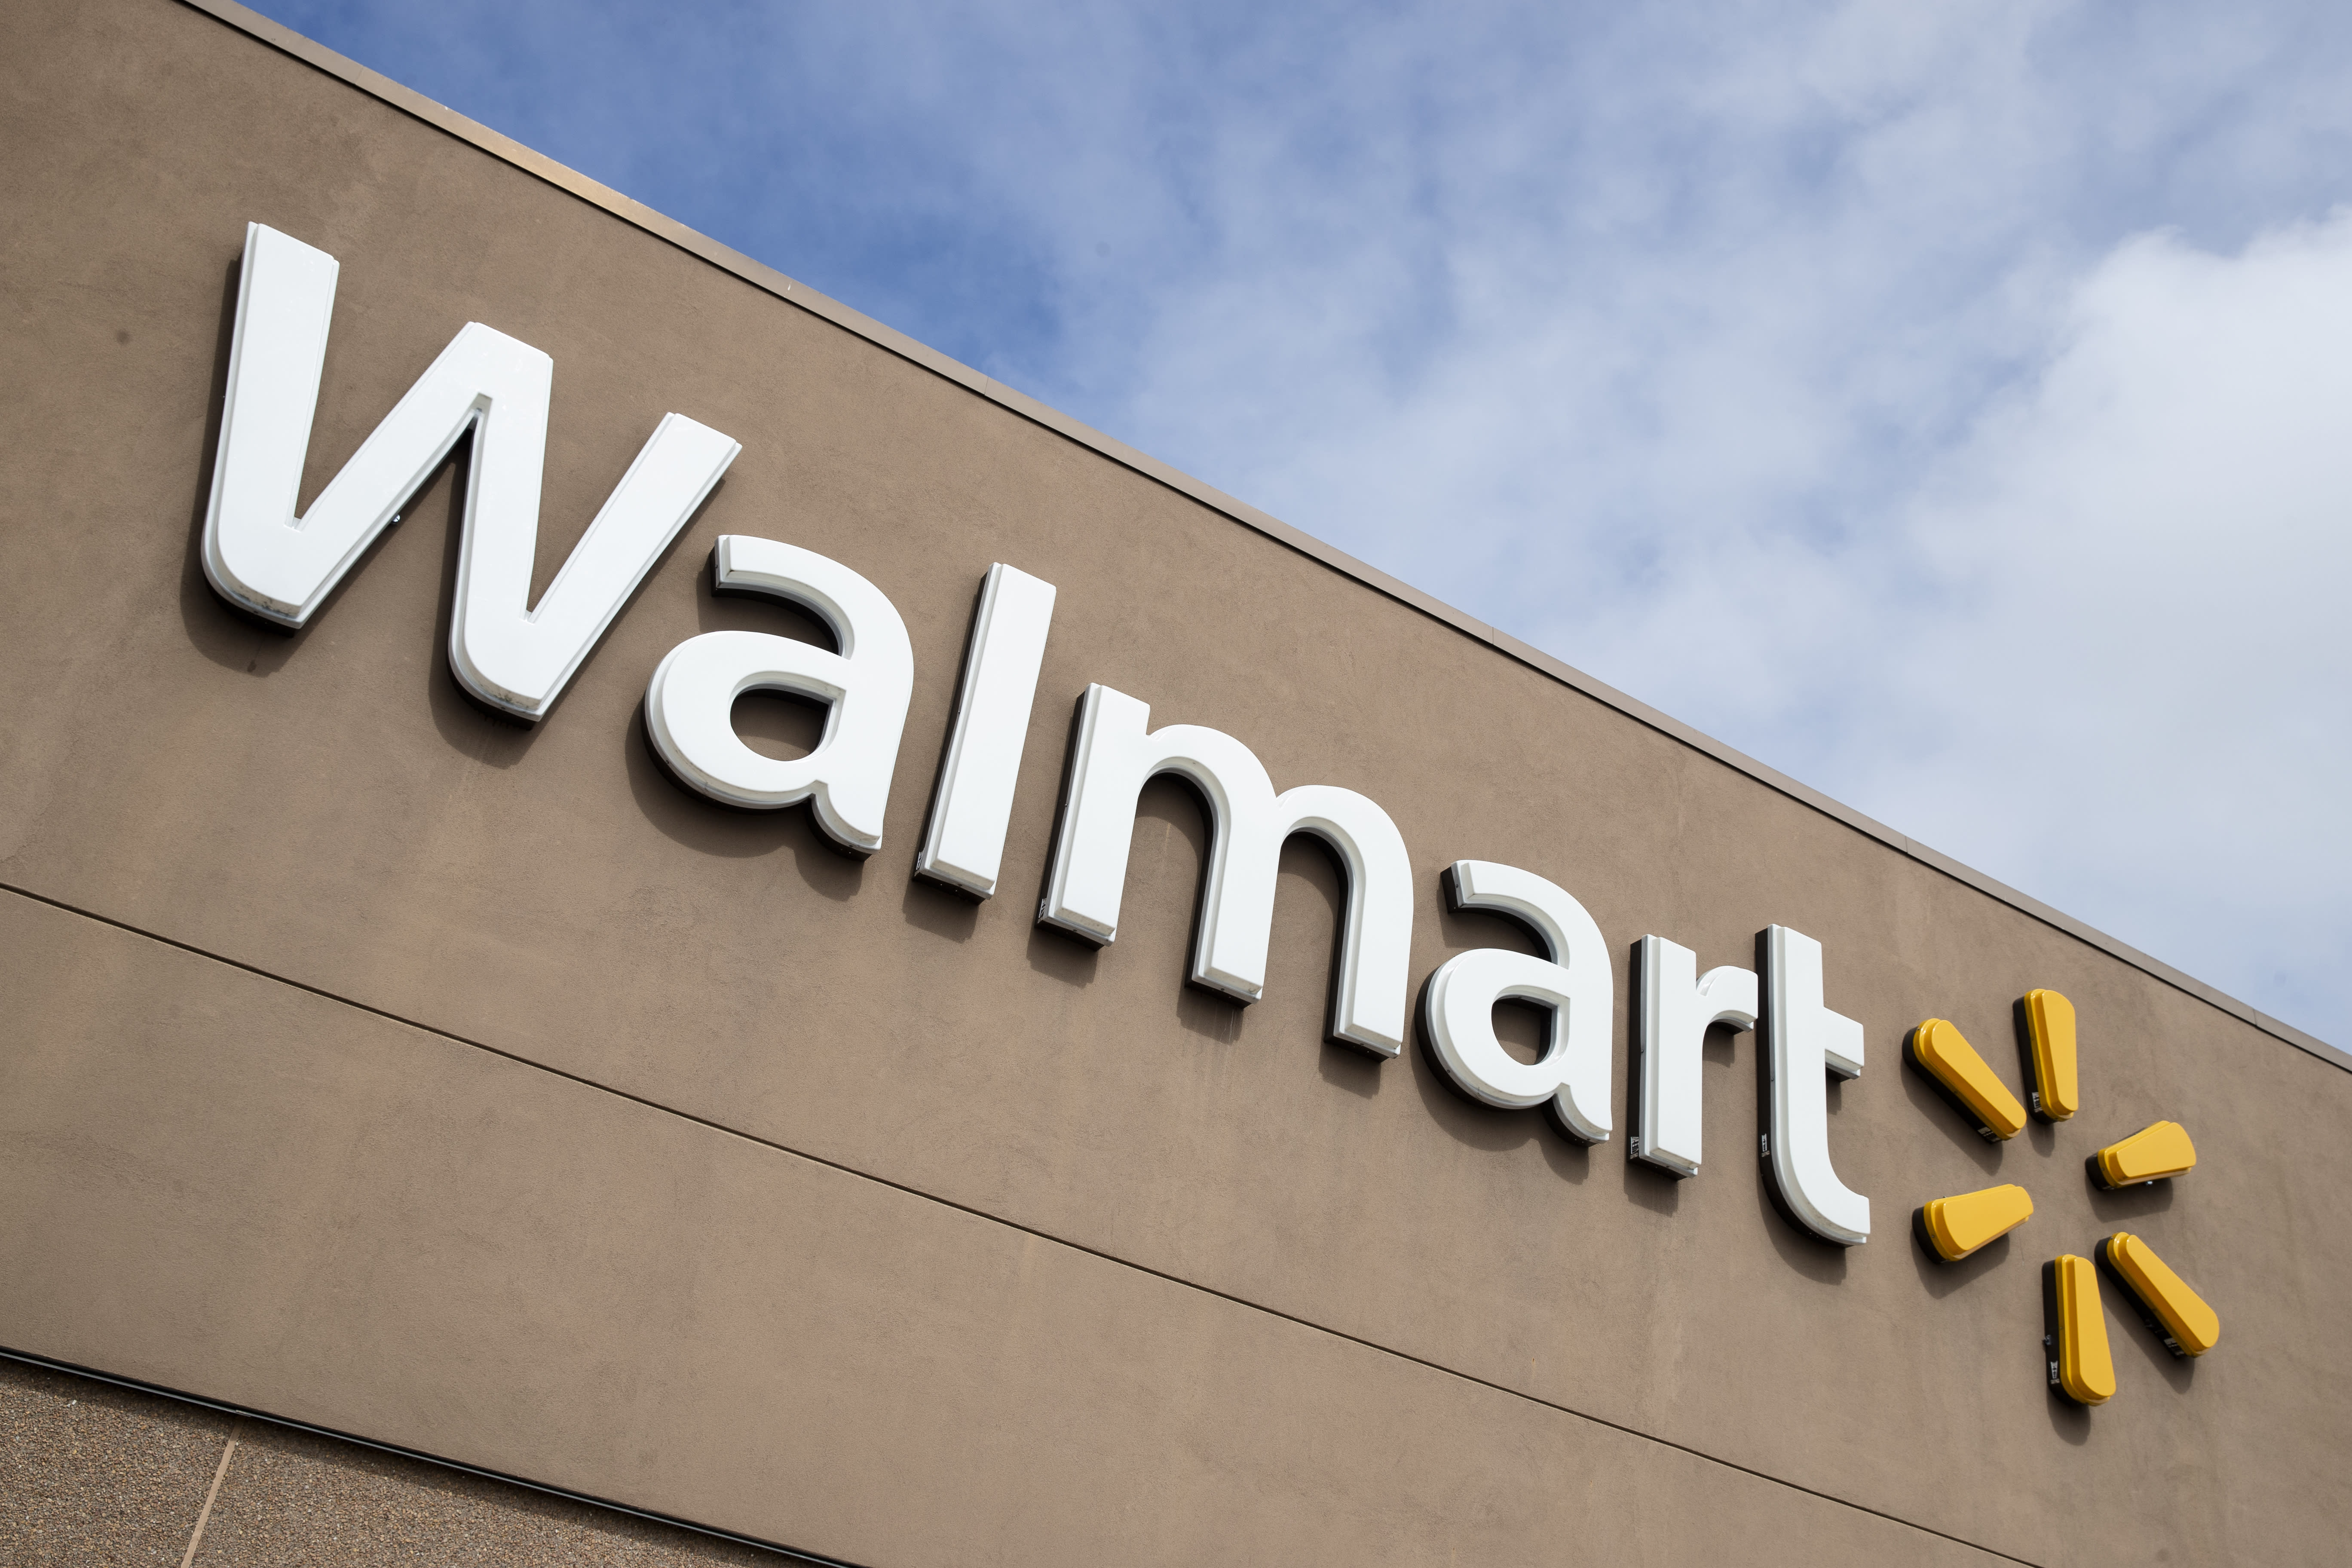 FILE - This Tuesday, March 17, 2020 file photo shows a Walmart in Warrington, Pa. A growing number of U.S. companies are pledging to give workers time off to vote in the presidential election this November, an effort that's gaining steam despite the government's reluctance to make Election Day a federal holiday. Walmart says it will give its 1.5 million U.S. workers up to three hours paid time off to vote.(AP Photo/Matt Rourke, File)